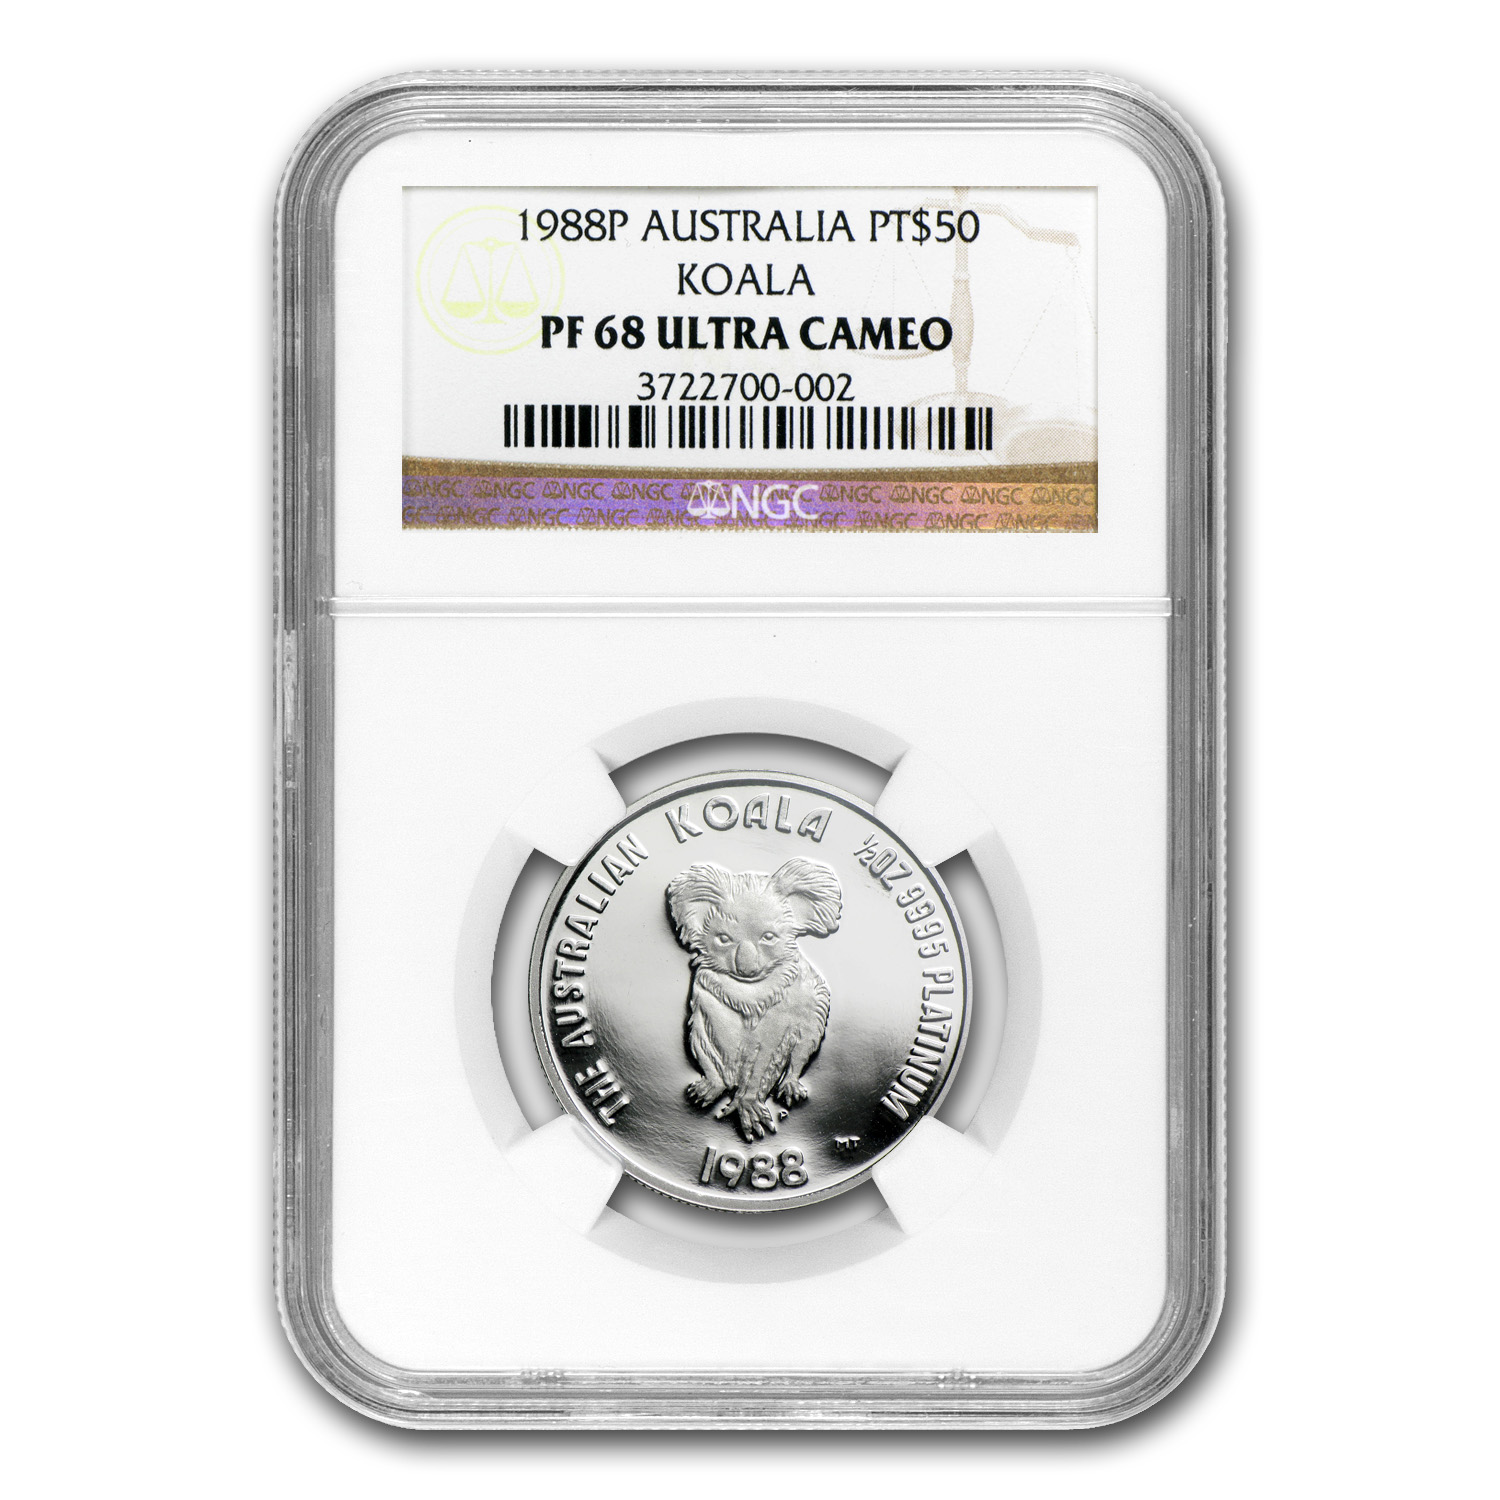 1988 Australia 1/2 oz Proof Platinum Koala PF-68 NGC